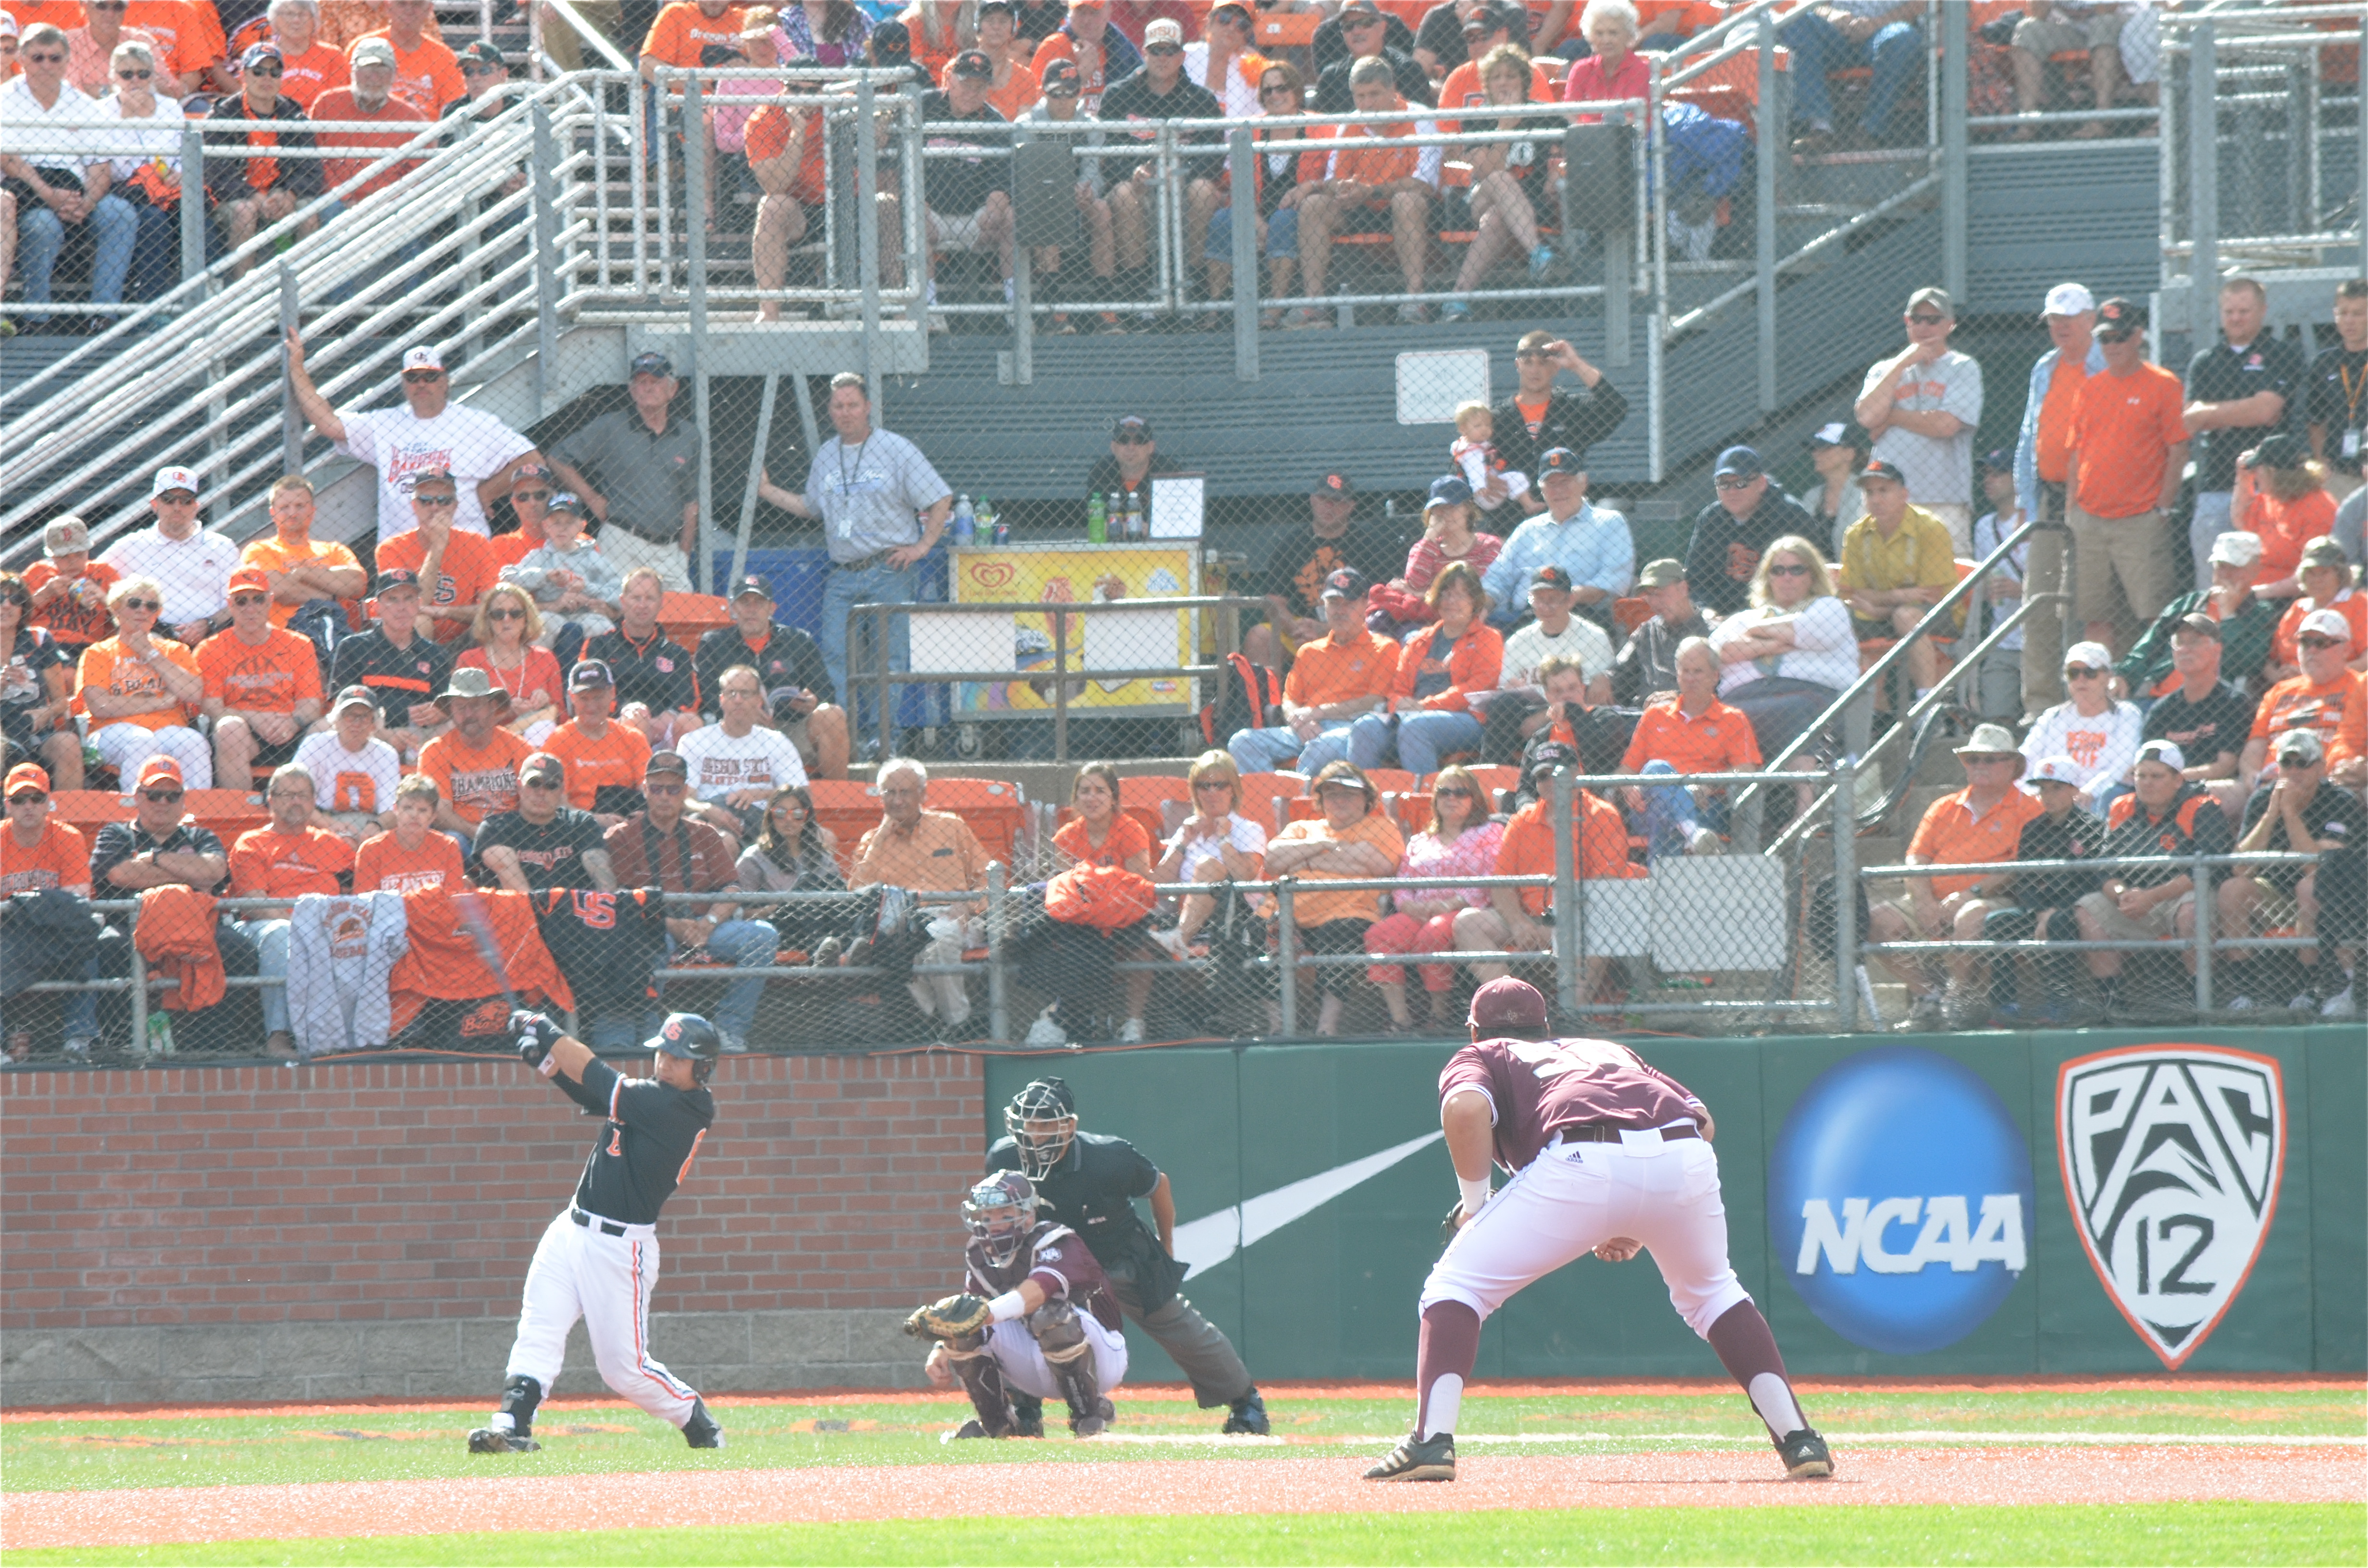 """Oregon State's Michael Conforto takes a mighty swing in the first inning. This is the view from the """"cheap seats"""" in right field at Goss Stadium. (Photo by Aaron Yost)"""